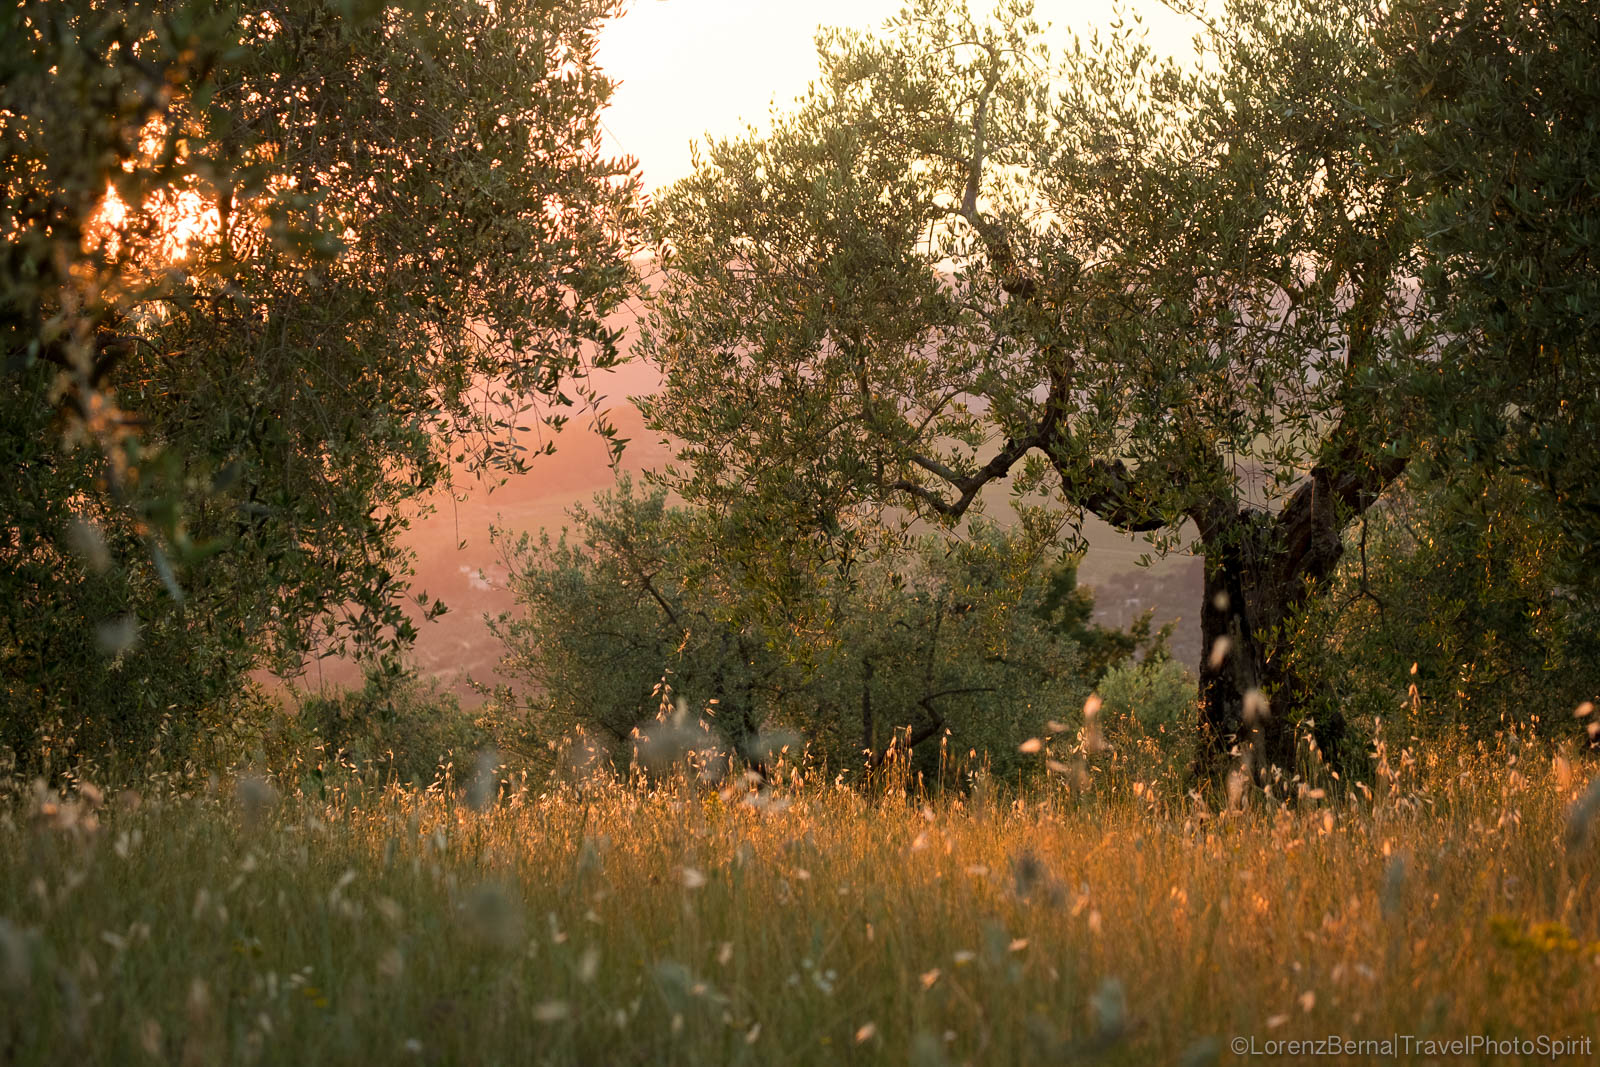 Ancient olive trees at sunset, Tuscany, Italy.